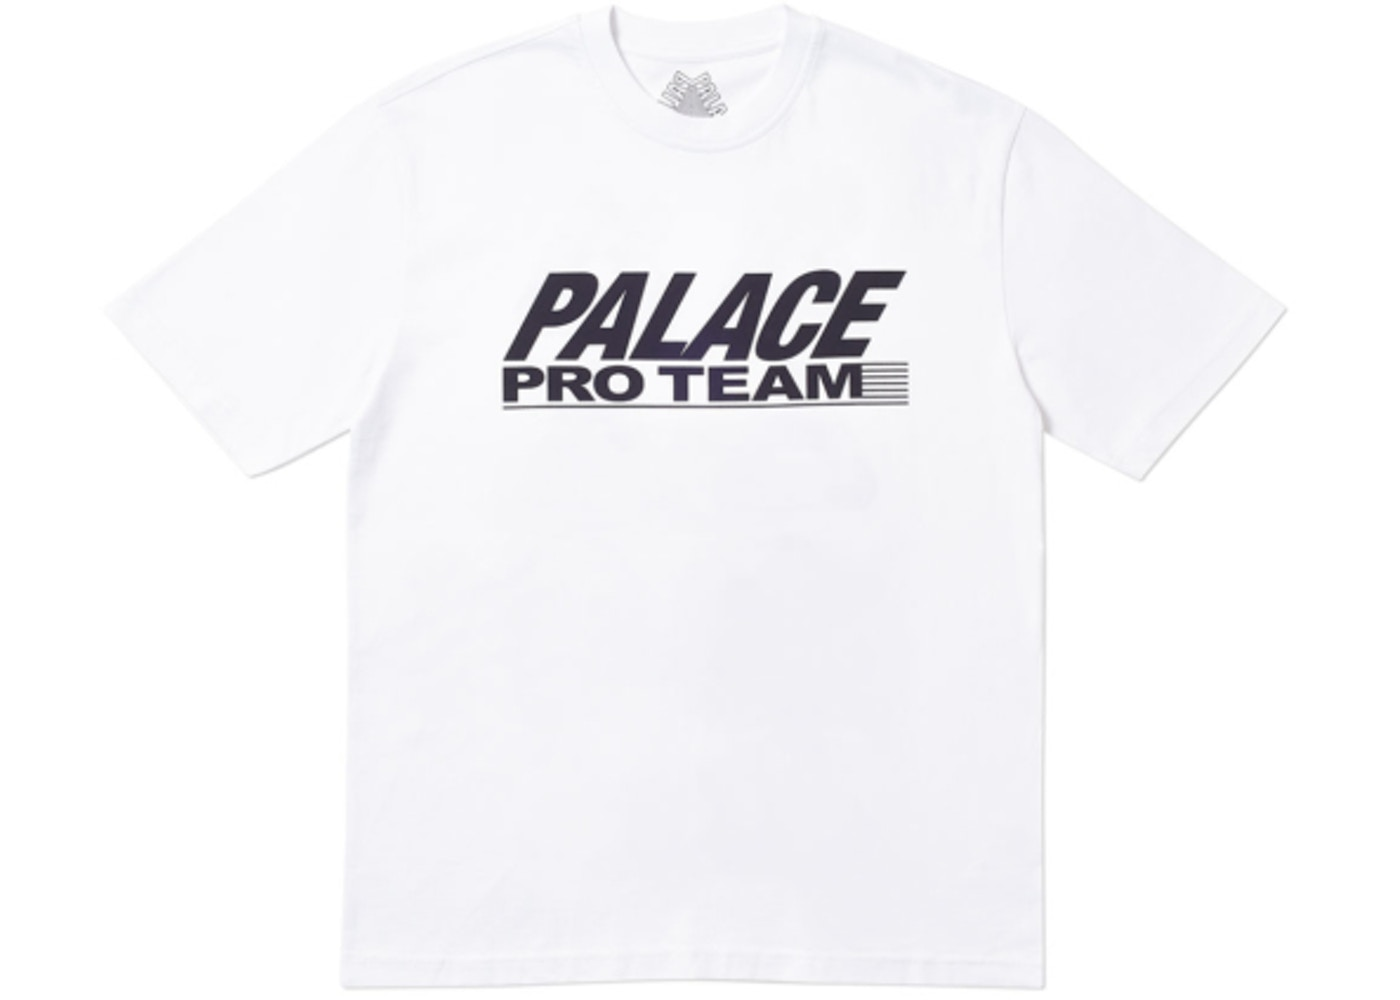 b4b1ec415f97 Palace Skateboards T Shirt Sale – EDGE Engineering and Consulting ...